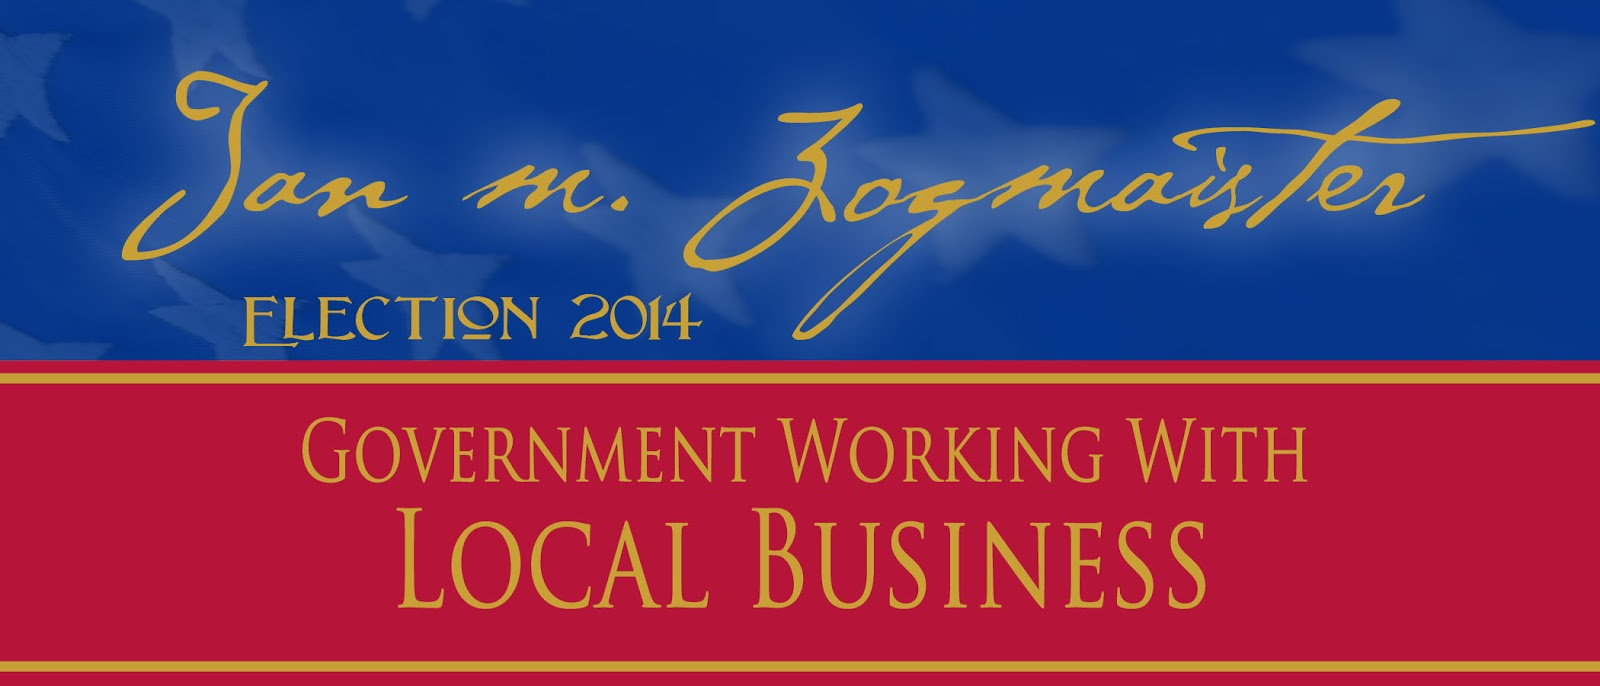 Government Working with Local Business